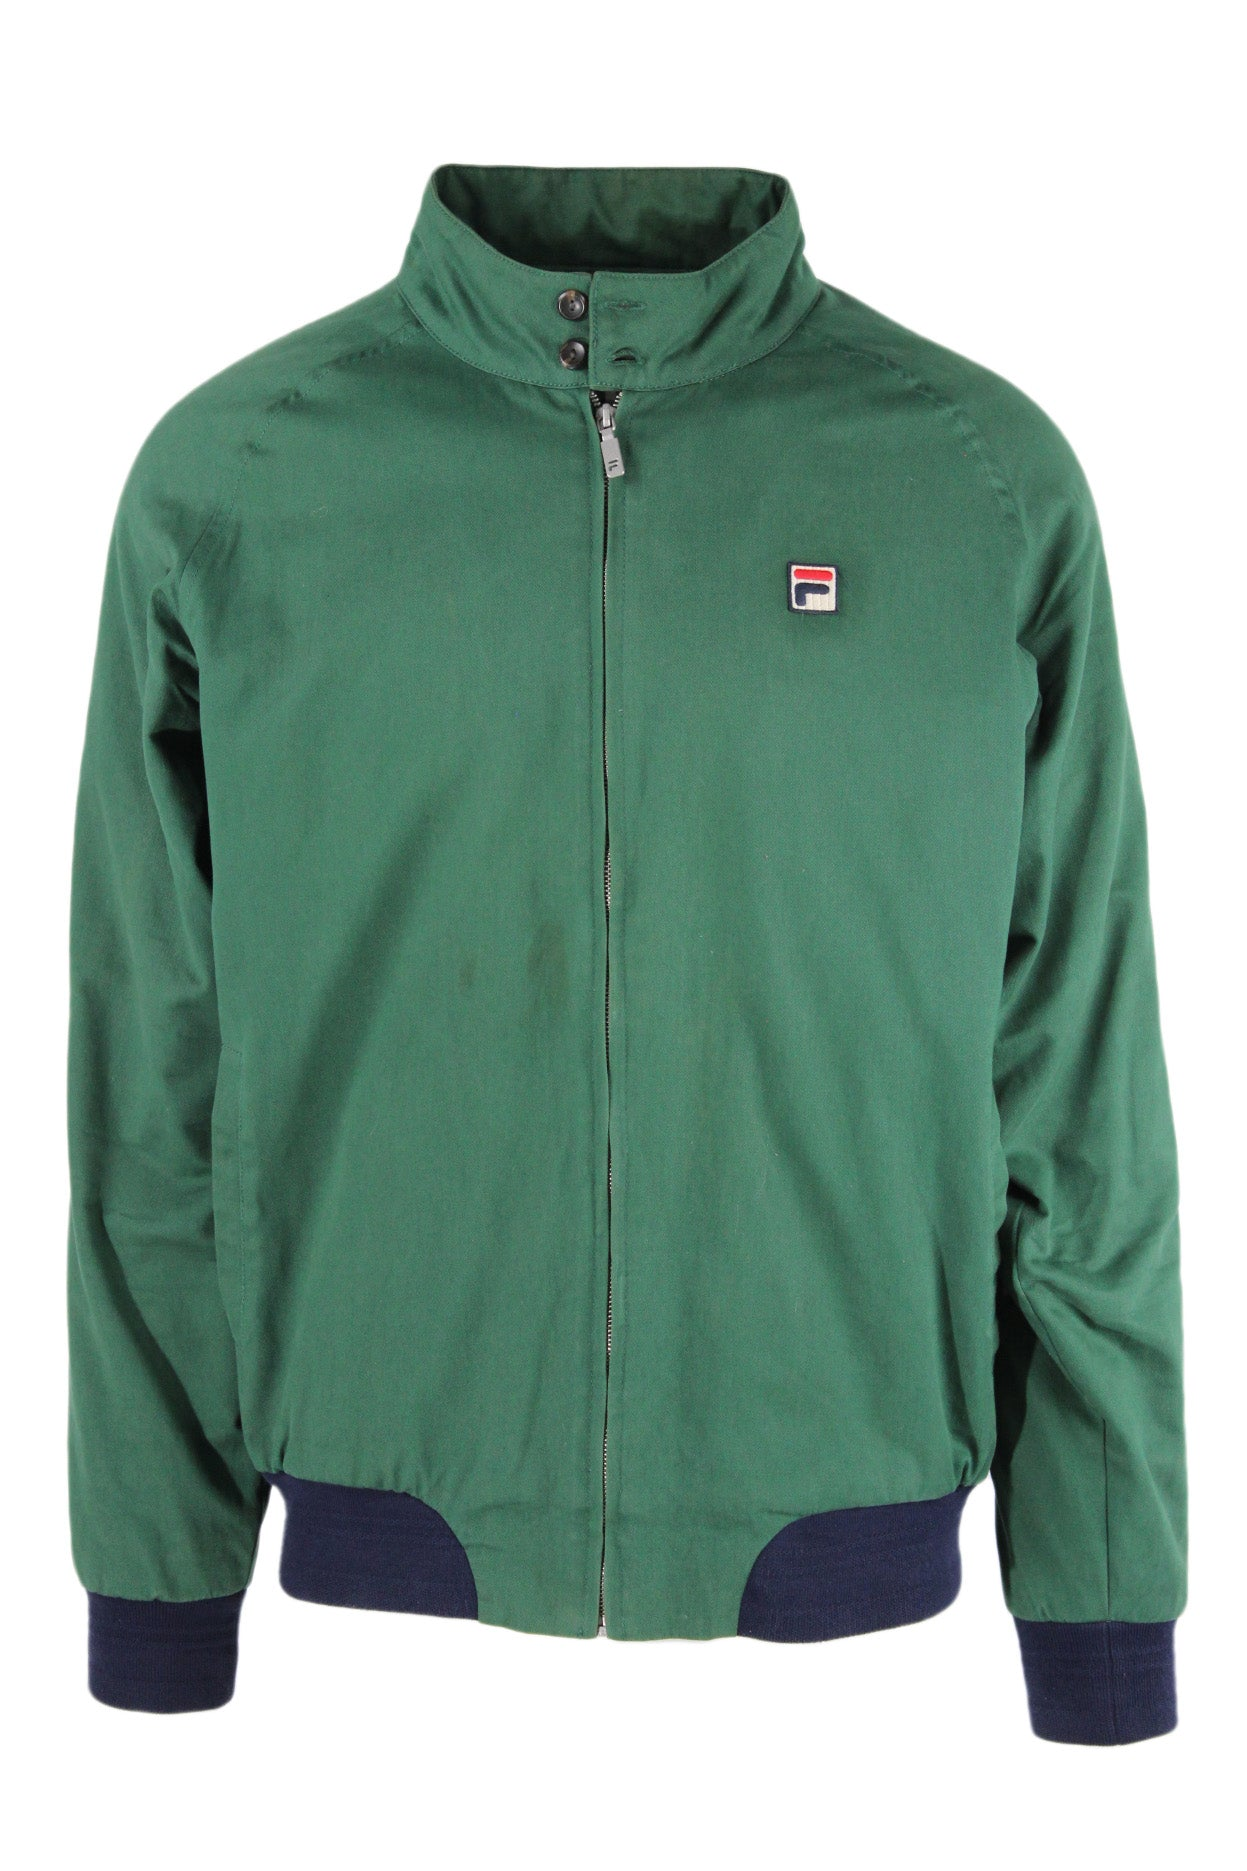 fila for urban outfitters green zip up cotton jacket. features logo tag at left breast with hand pockets at sides. fully plaid lined with navy ribbed at cuffs and hem.